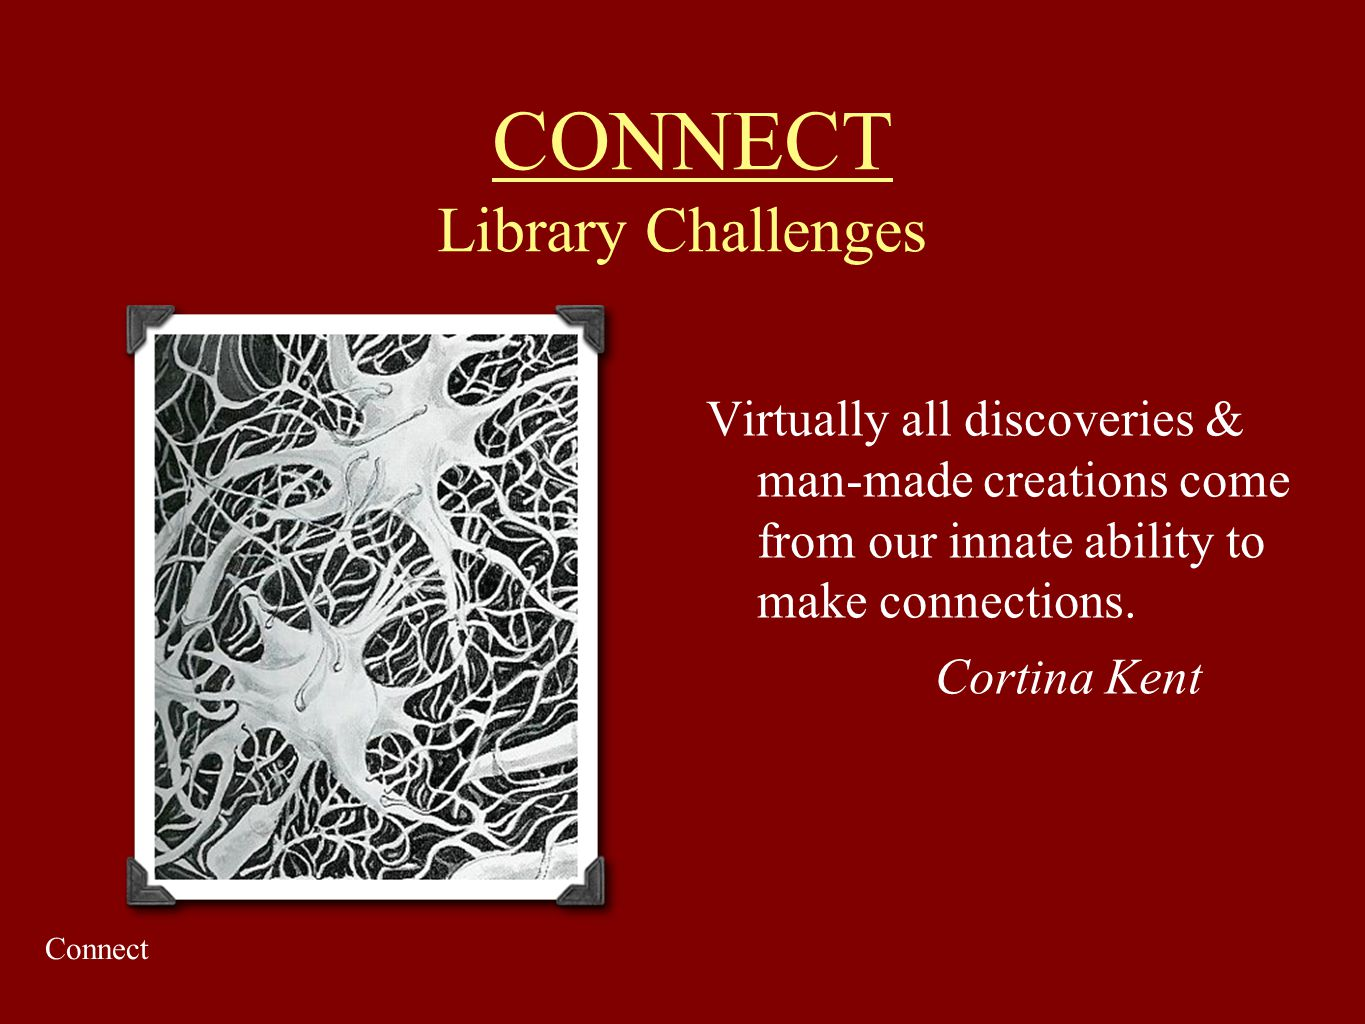 CONNECT Library Challenges